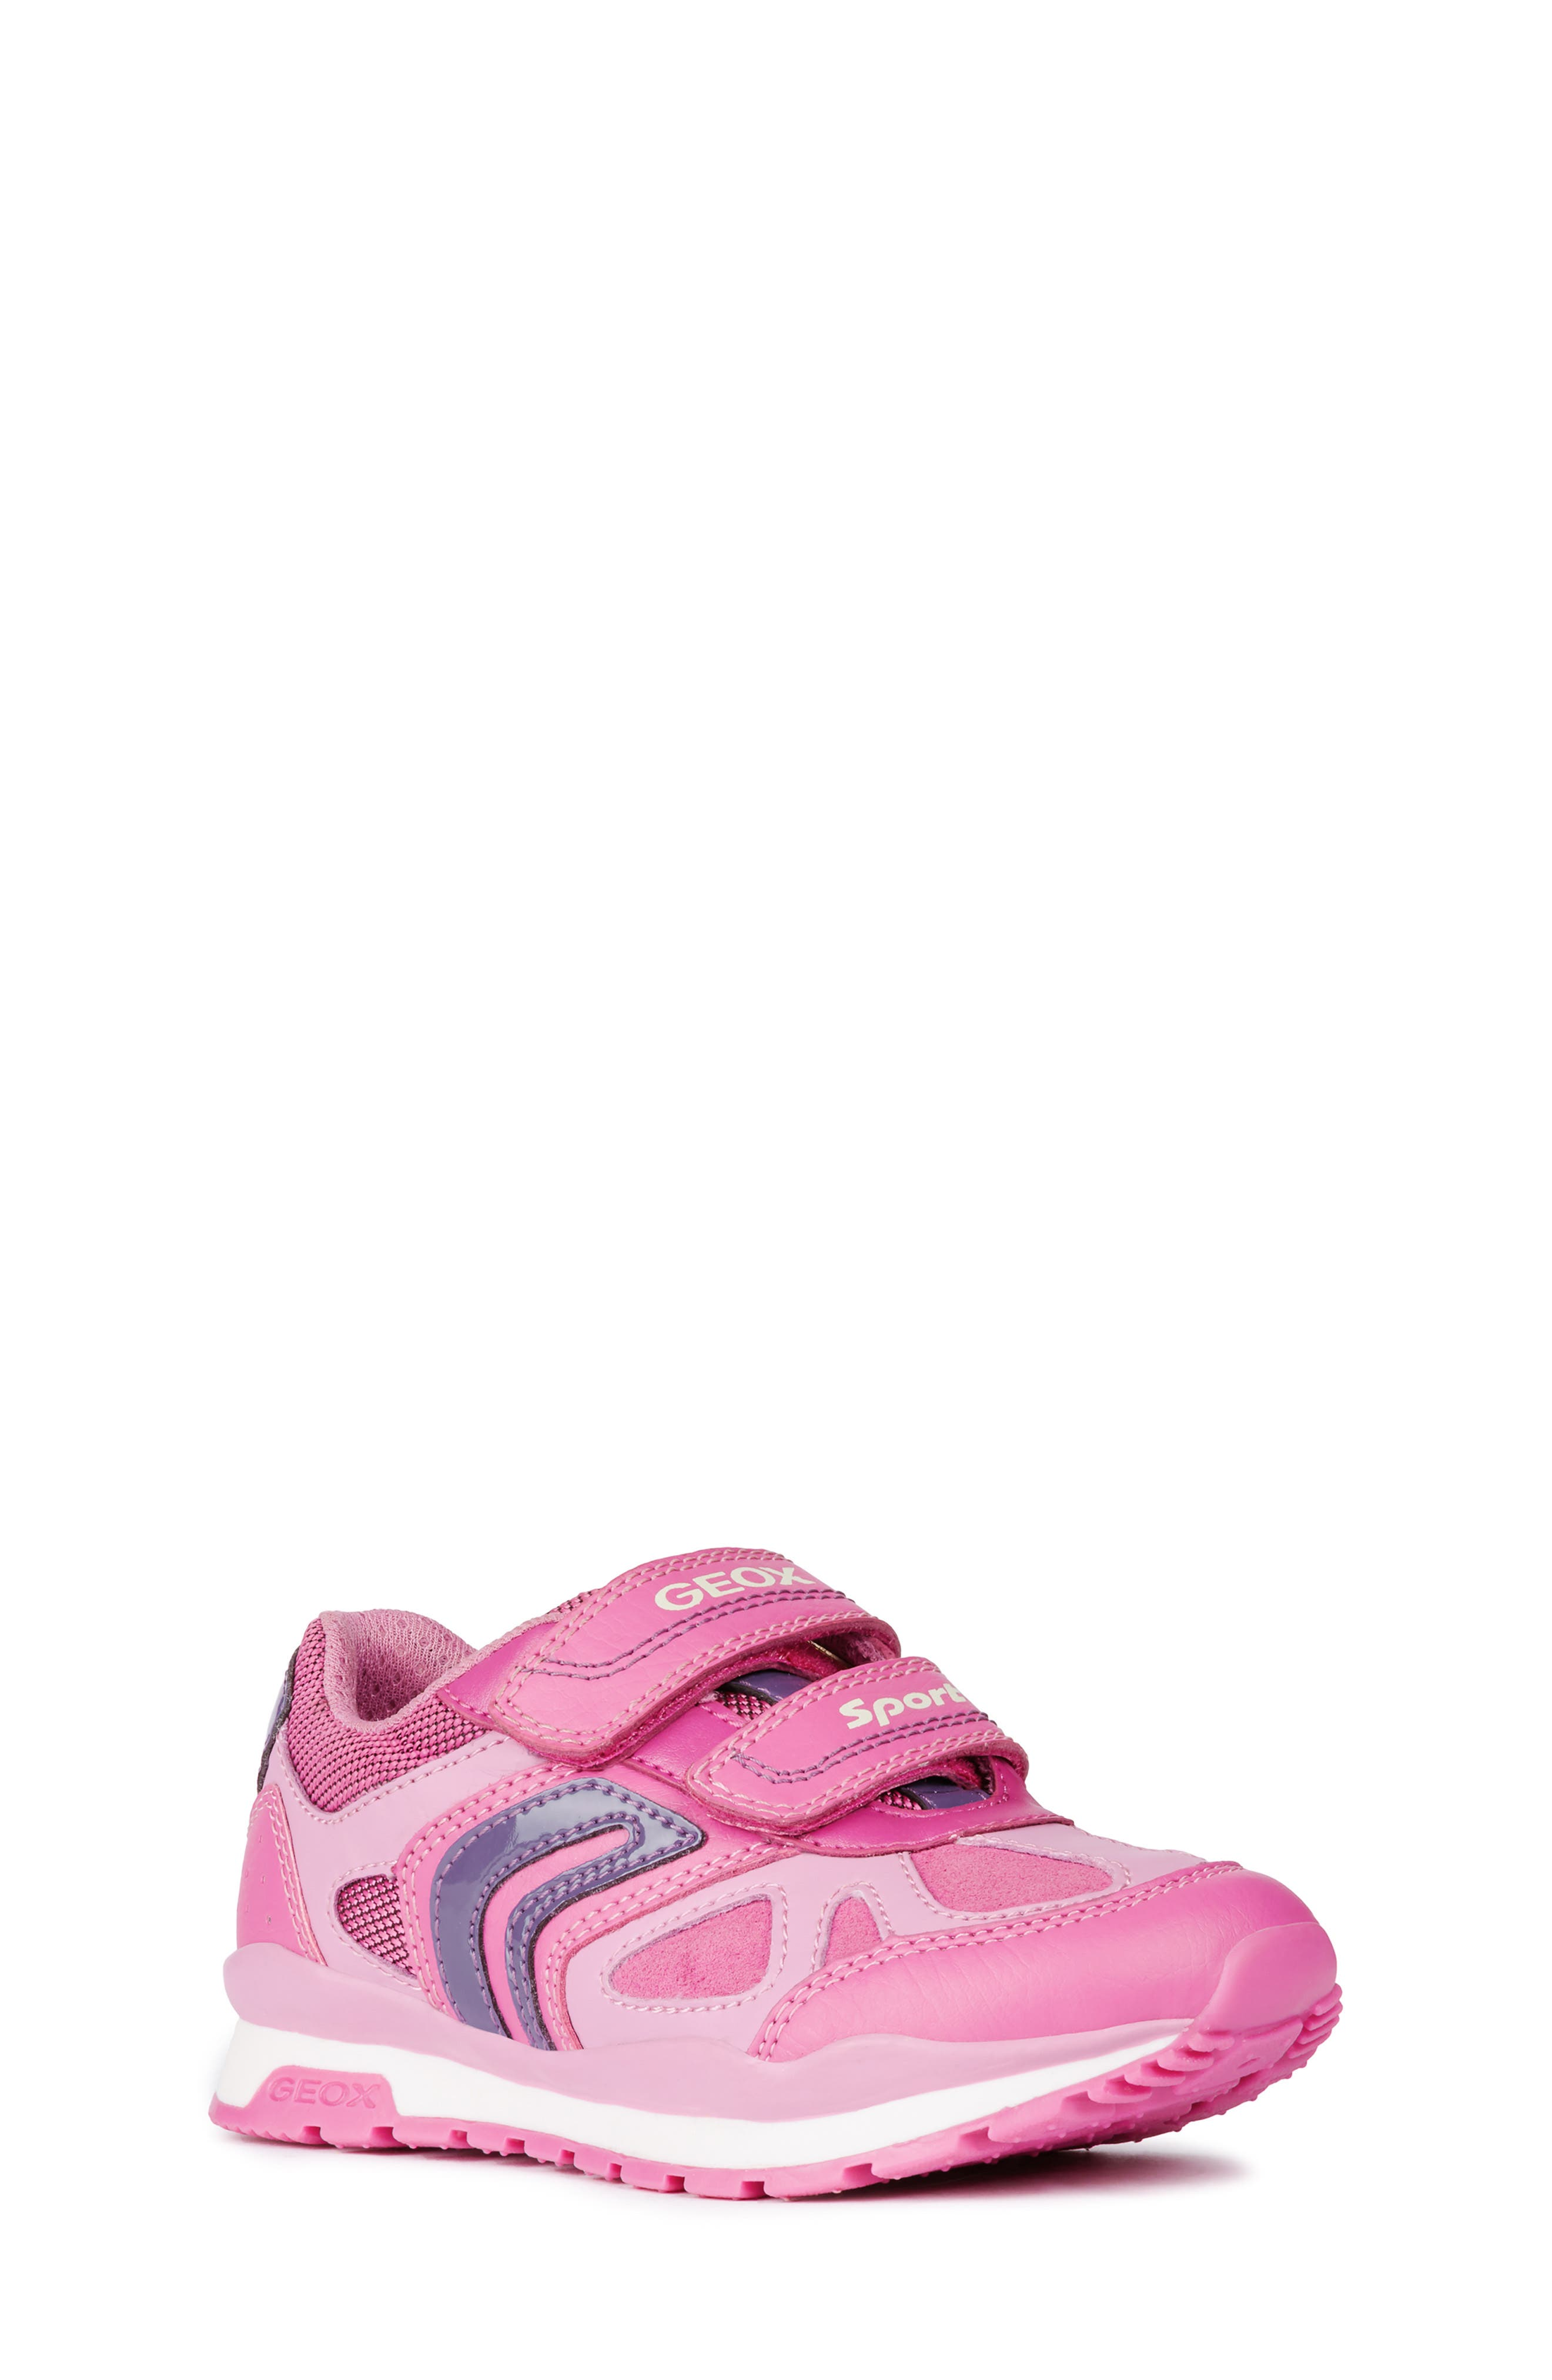 Pavel Sneaker,                         Main,                         color, FUCHSIA/PINK